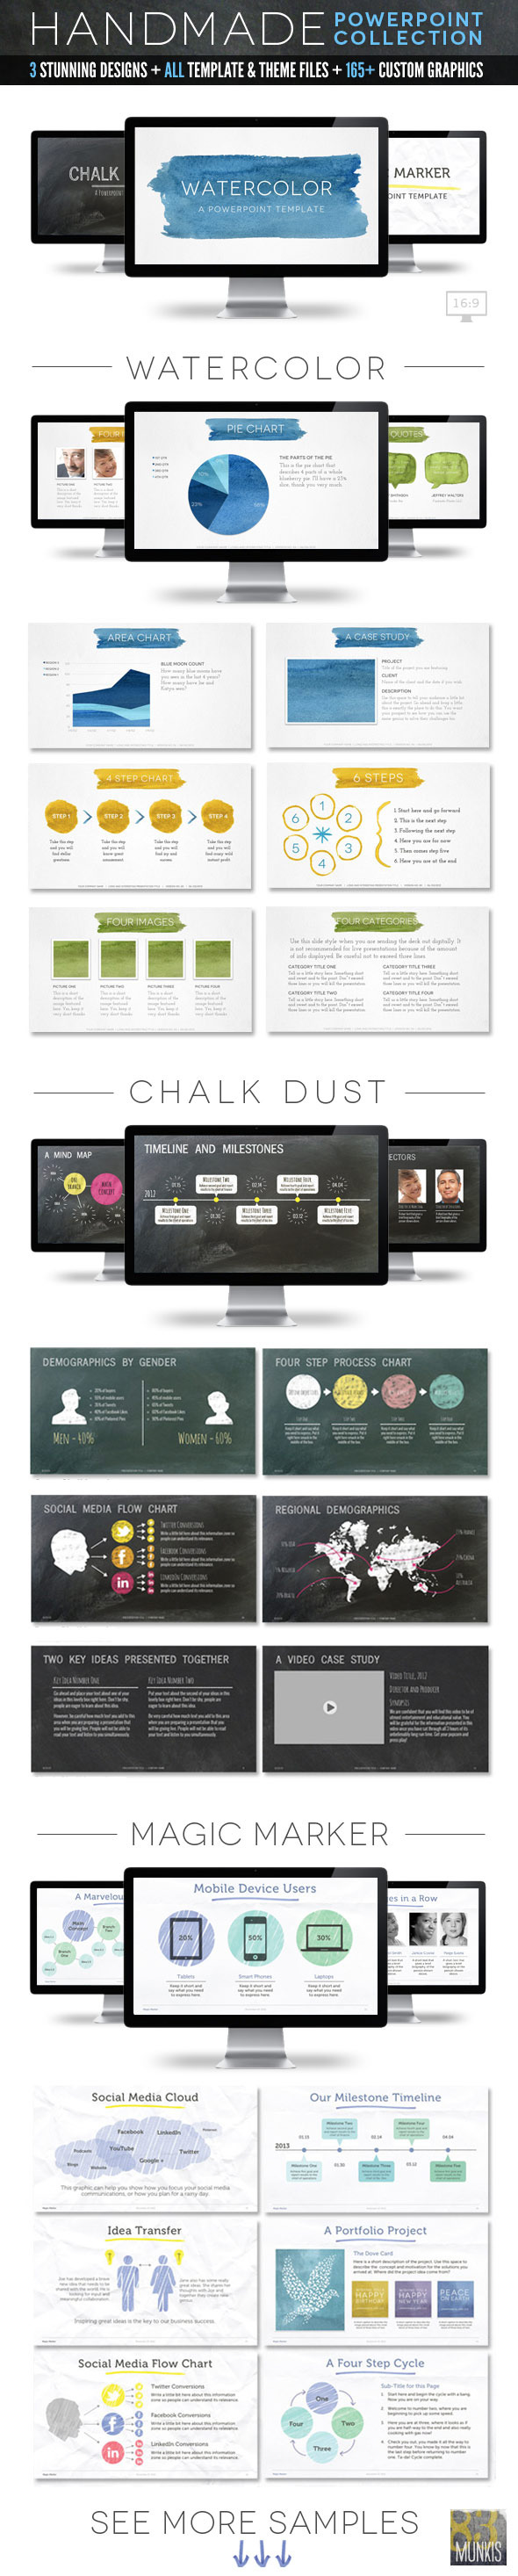 Handmade Collection Powerpoint Template Bundle by 83MUNKIS ...